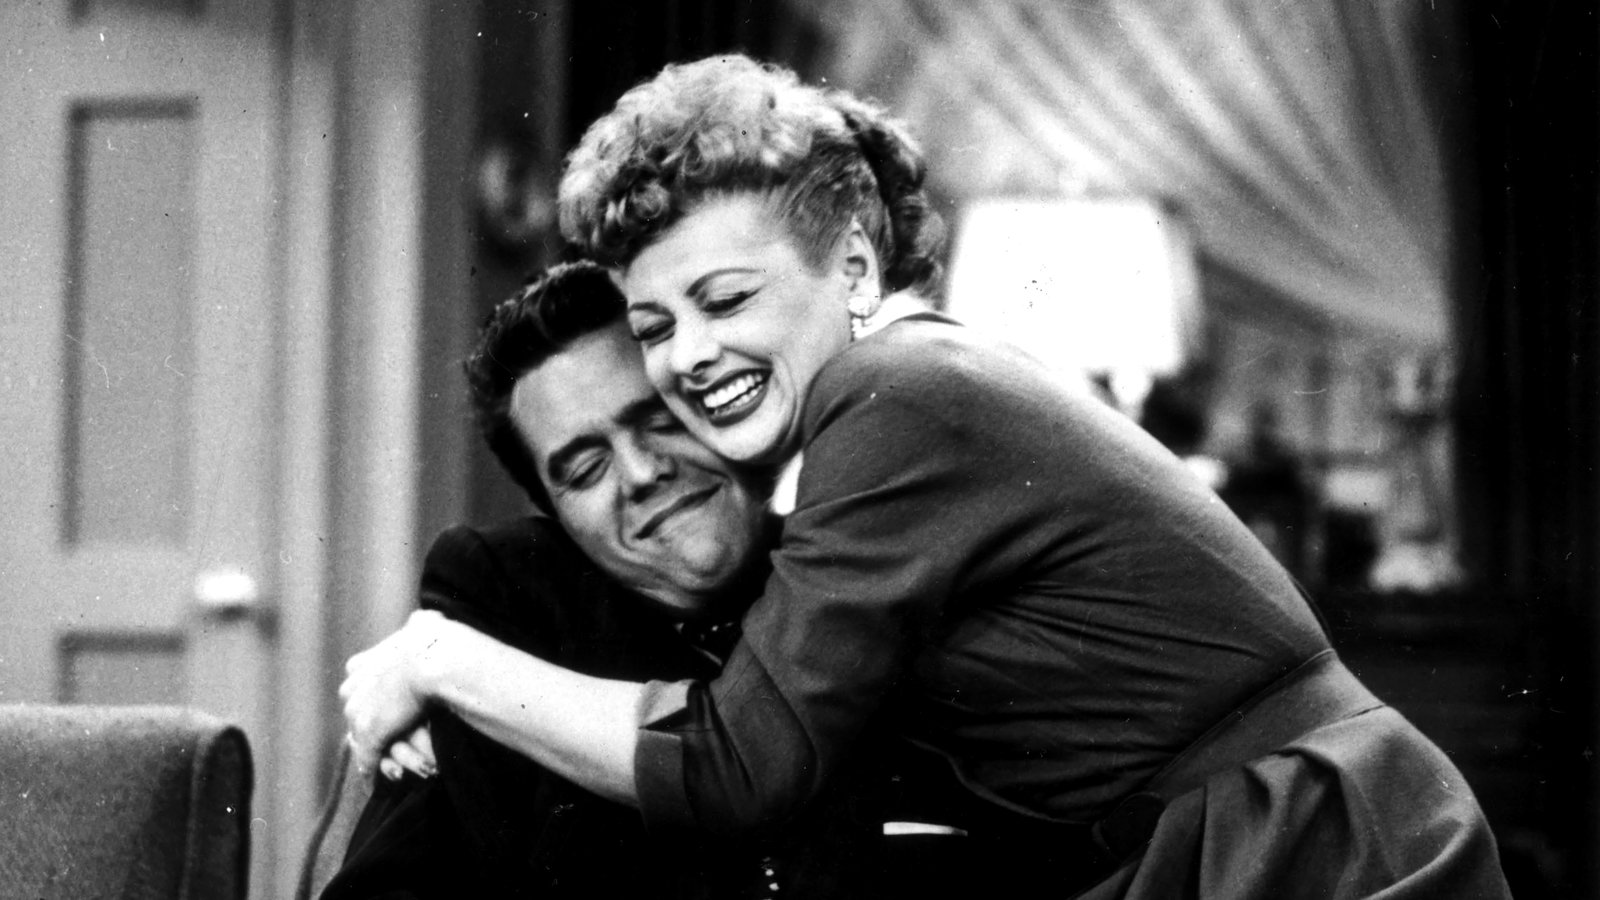 Lucy and Ricky embracing.